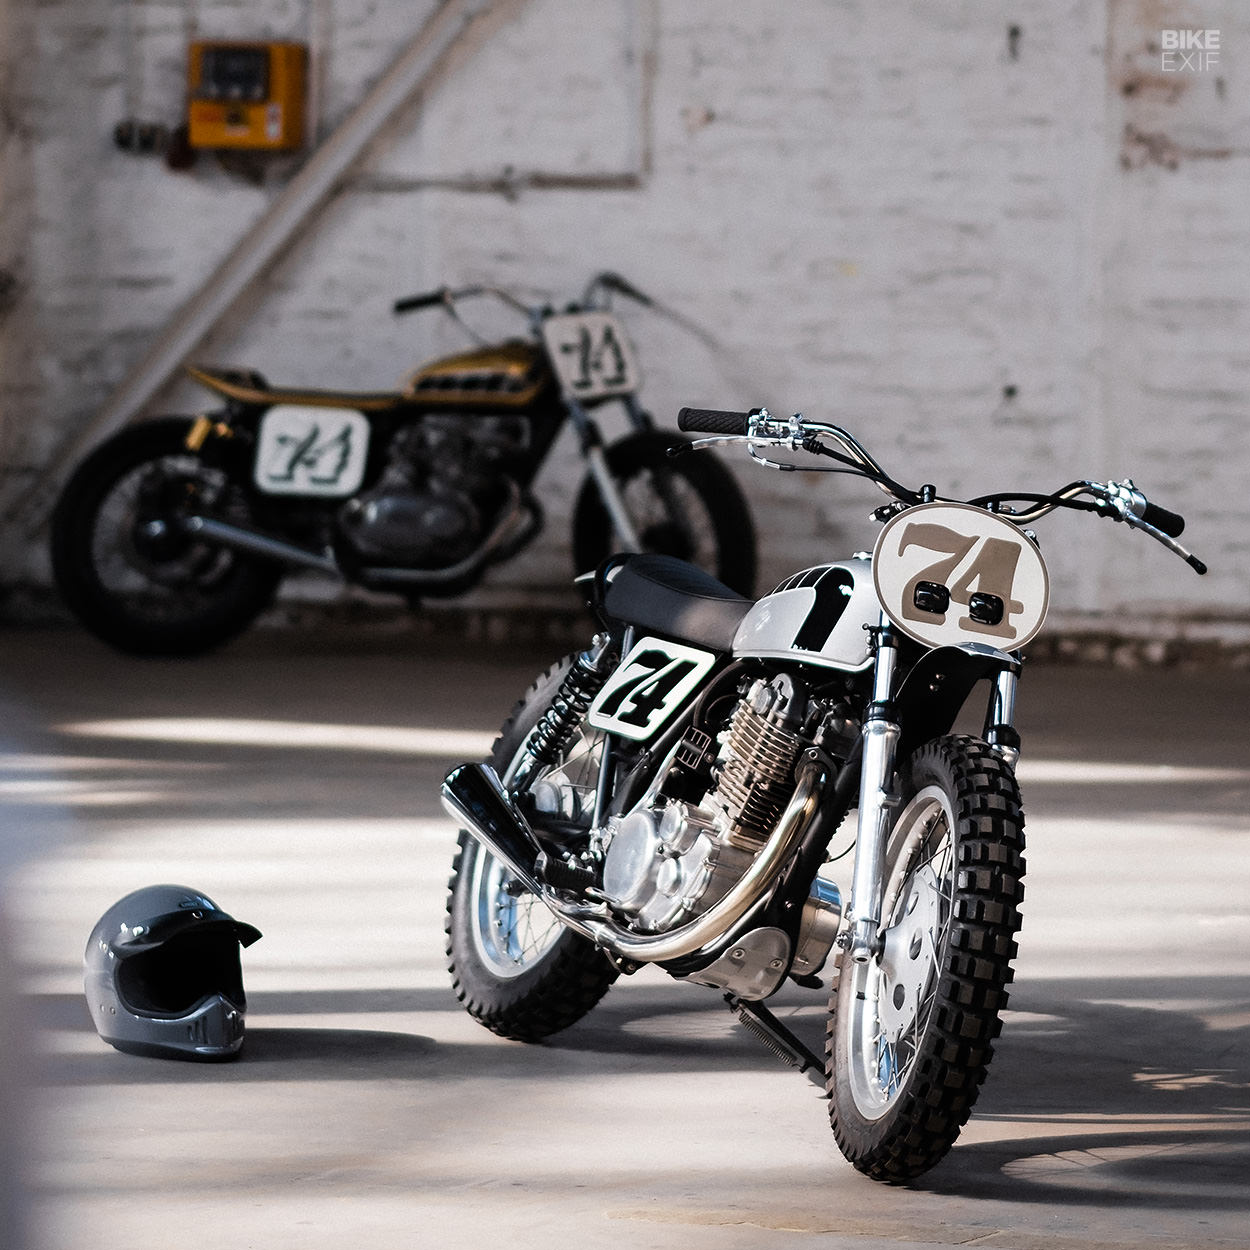 Yamaha SR500 and XS500 customs by Hombrese Bikes